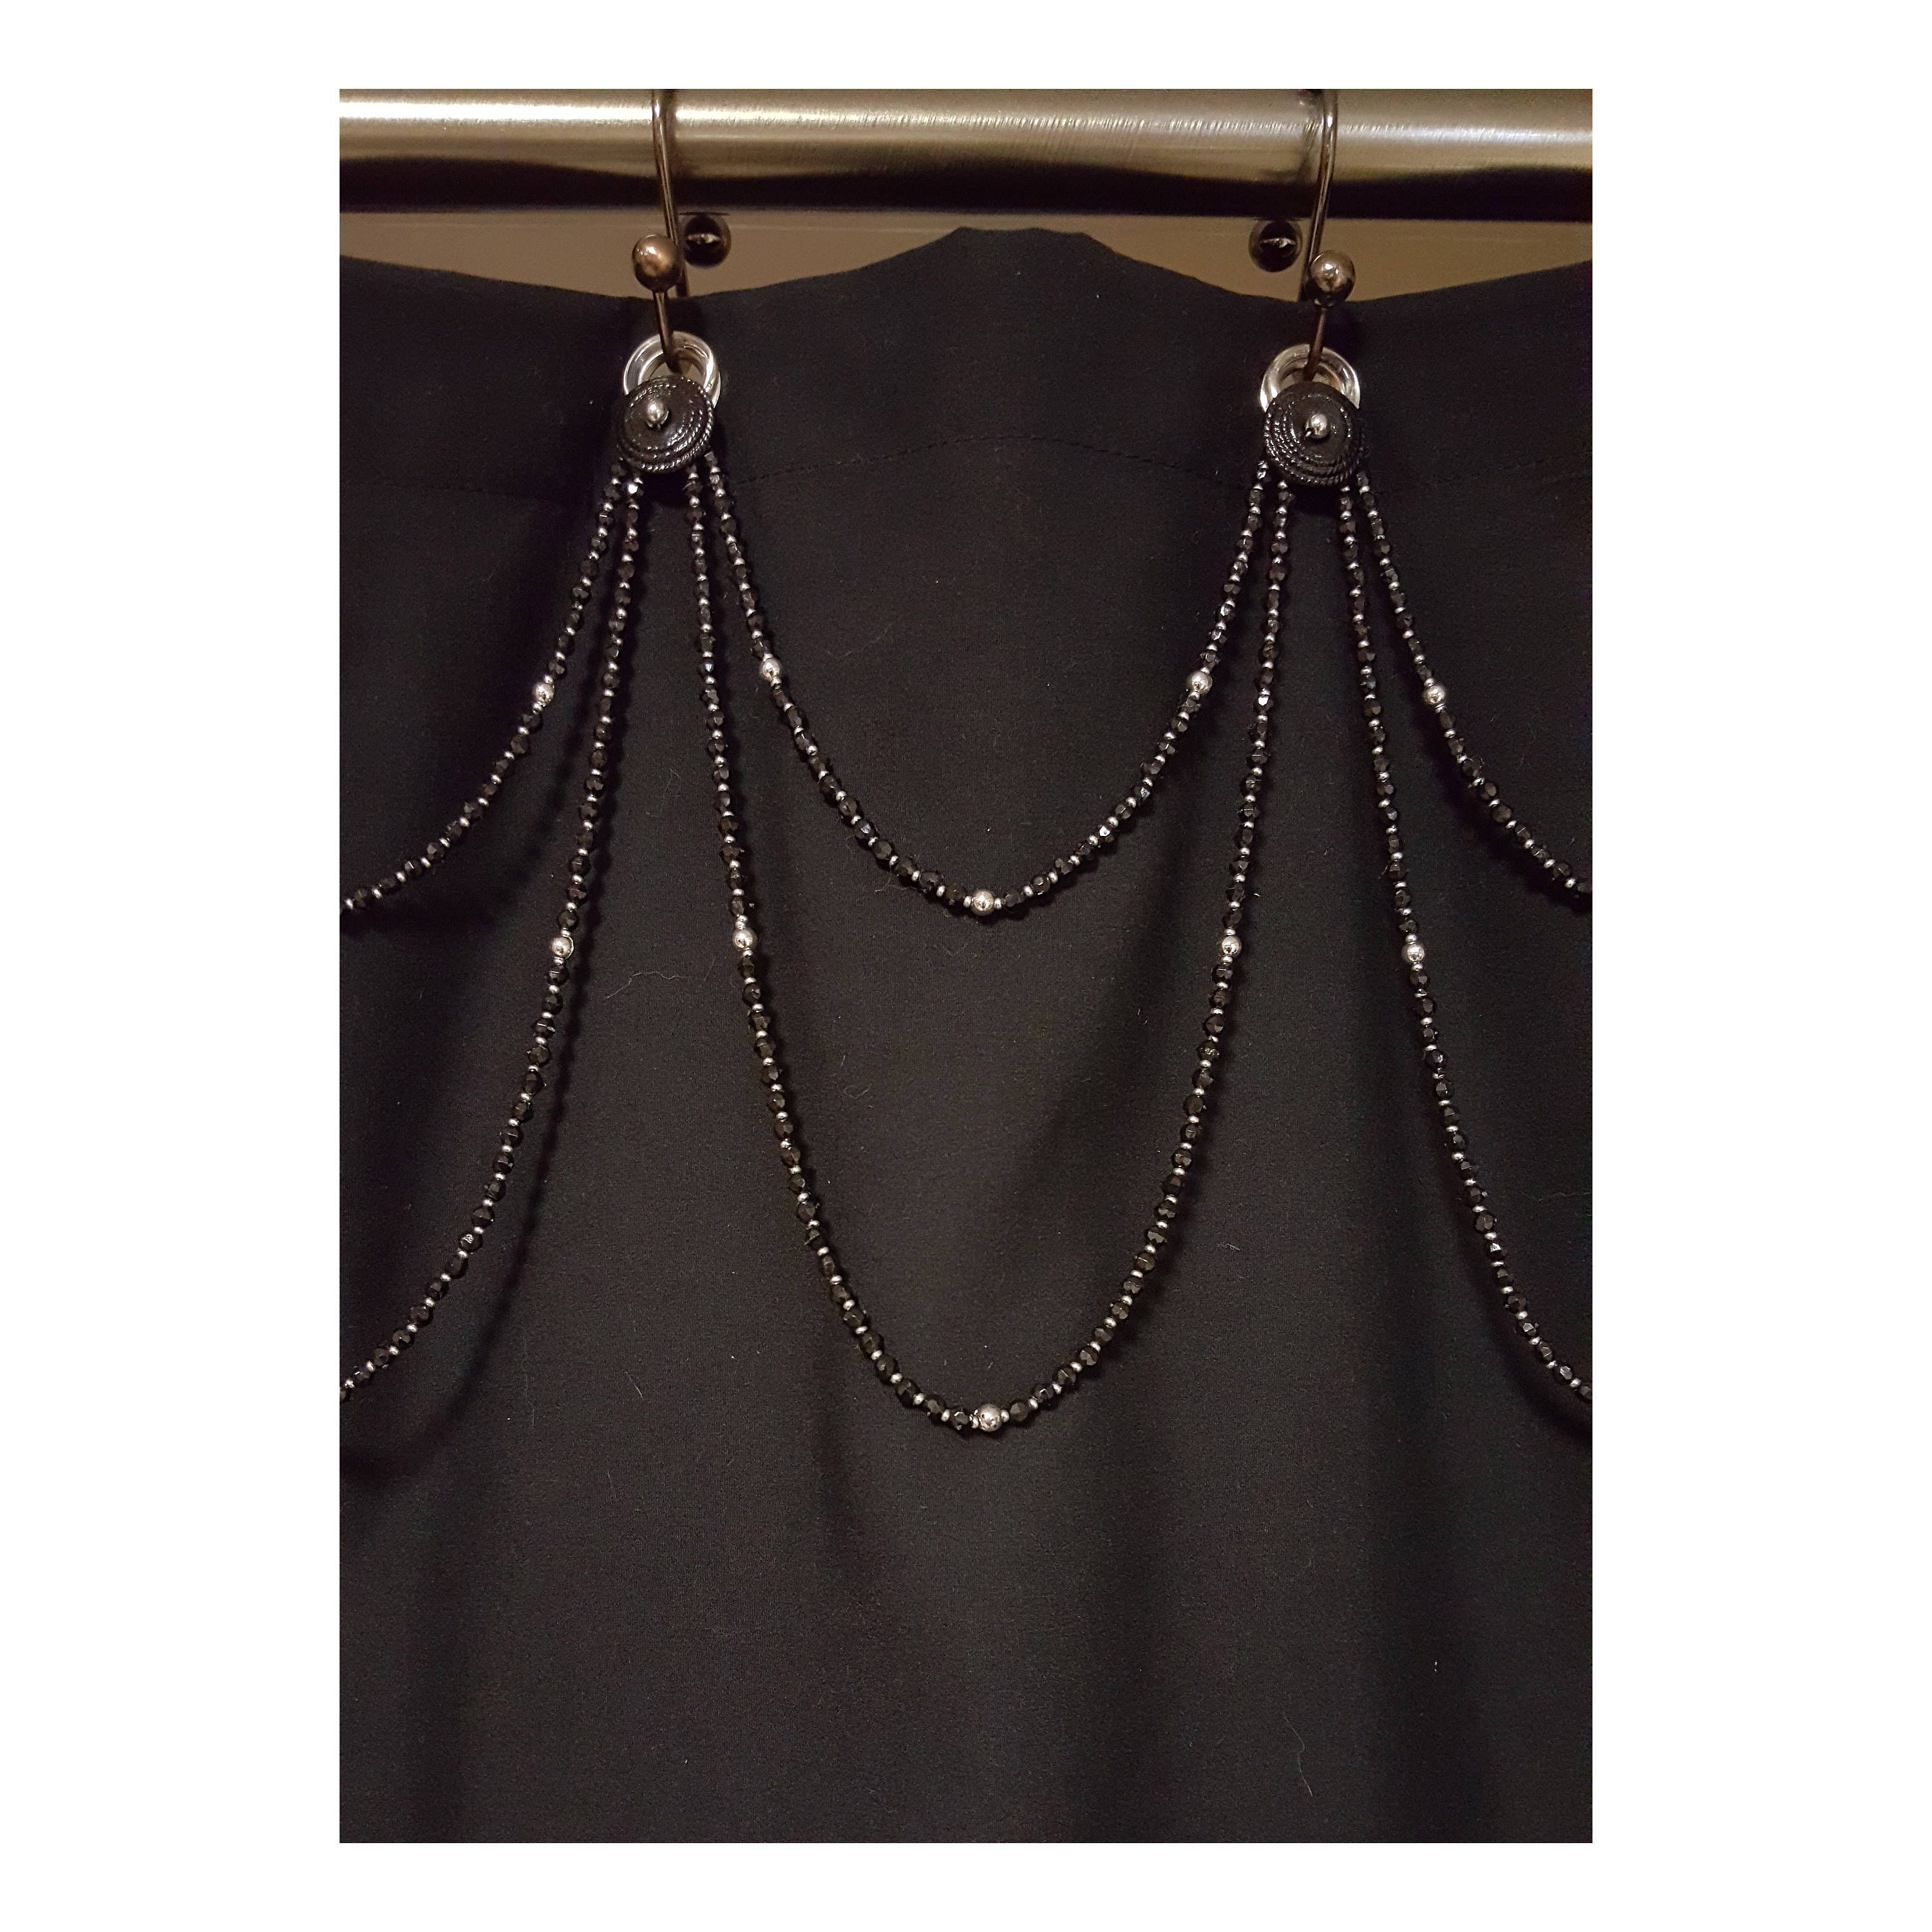 Adding Glam To My Shower Curtain Beaded Shower Curtain Accent Double Swag Glass Beads Http Et Beaded Curtains Shower Curtain Hooks Curtains With Rings